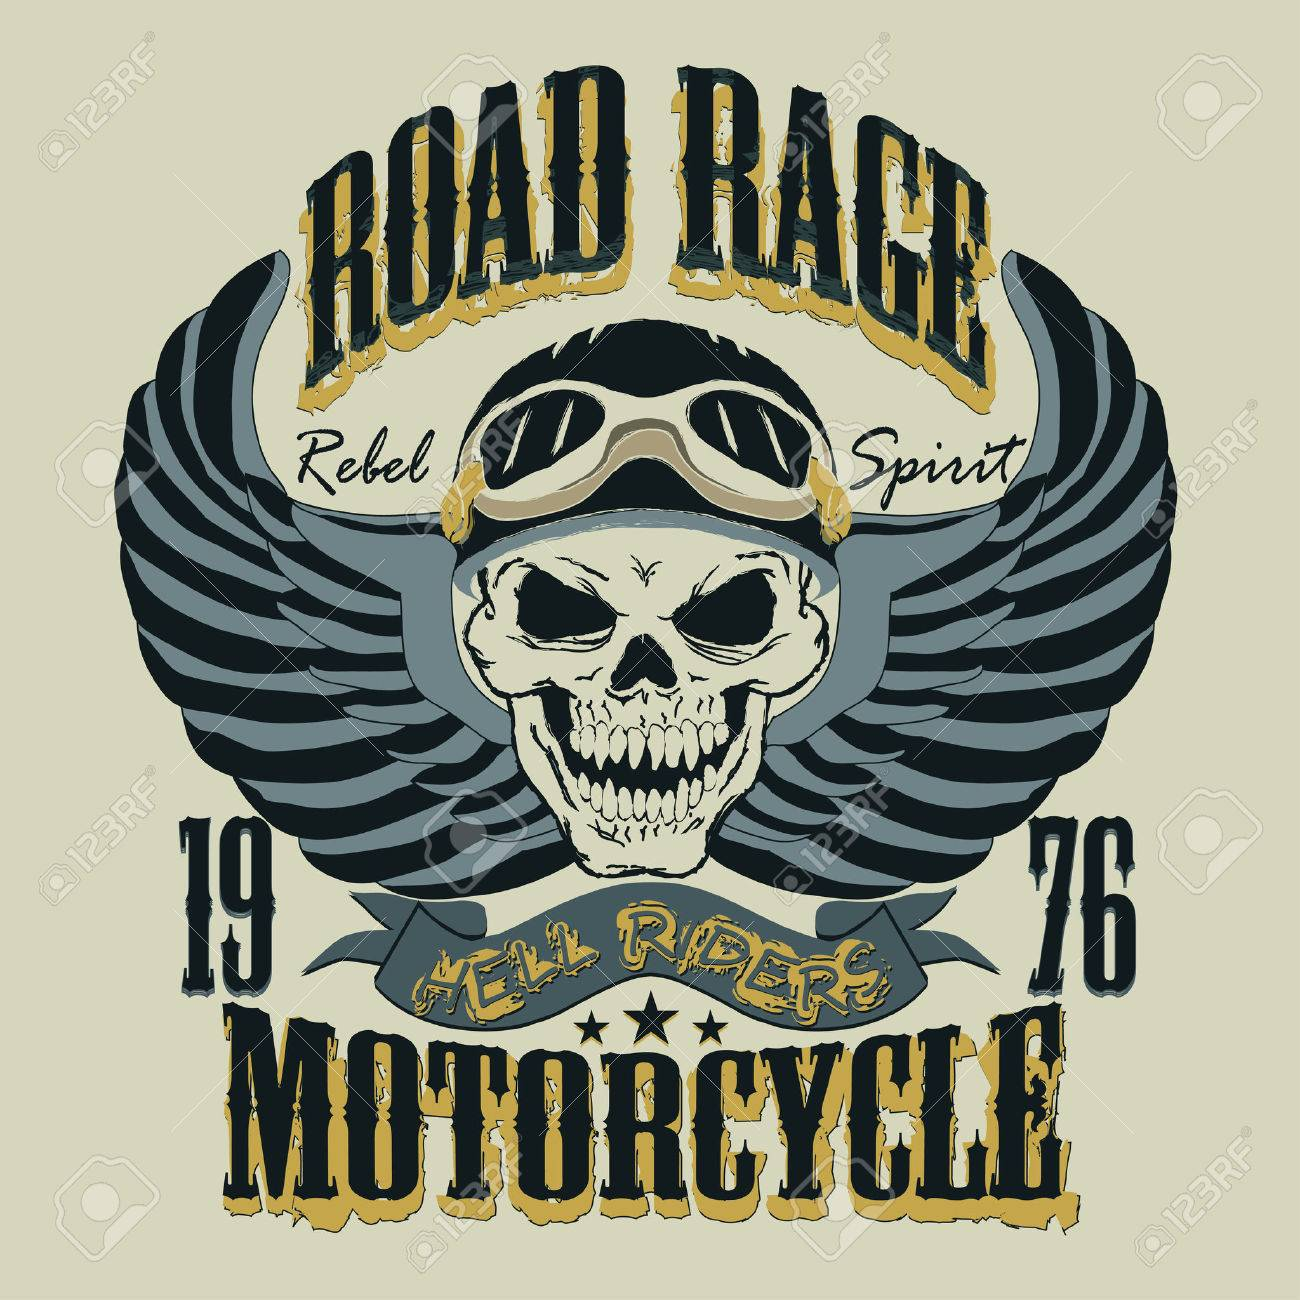 Desain t shirt racing - Desain T Shirt Racing Design T Shirt Bikers Motorcycle T Shirt Design Skull With A